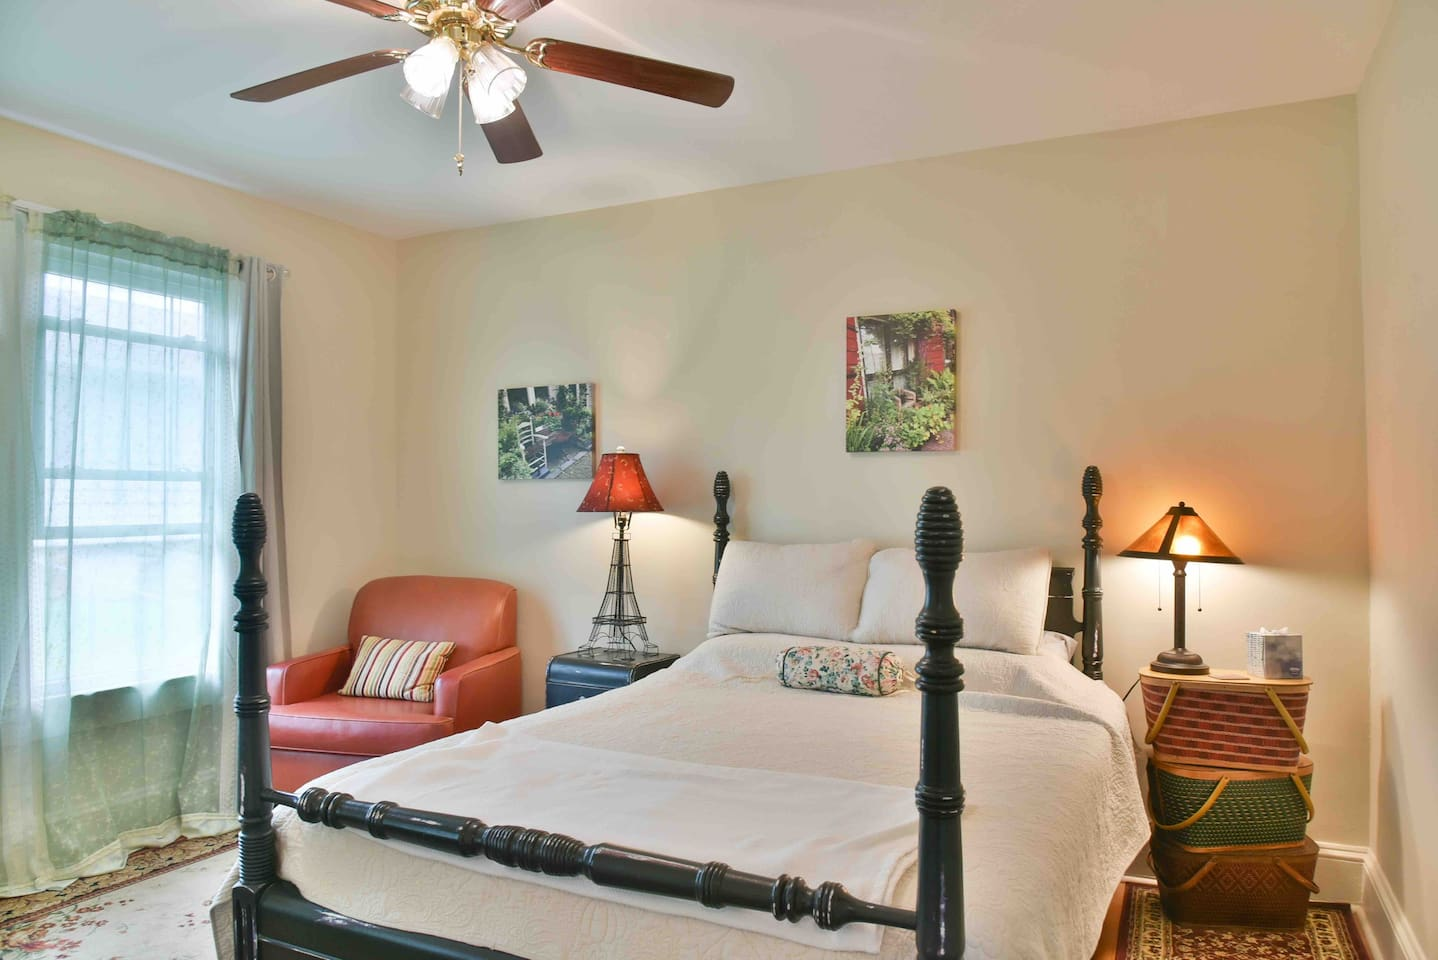 Guests rave about comfortable bed in the Paris room. Ceiling fan and blackout curtains make room extra comfy.